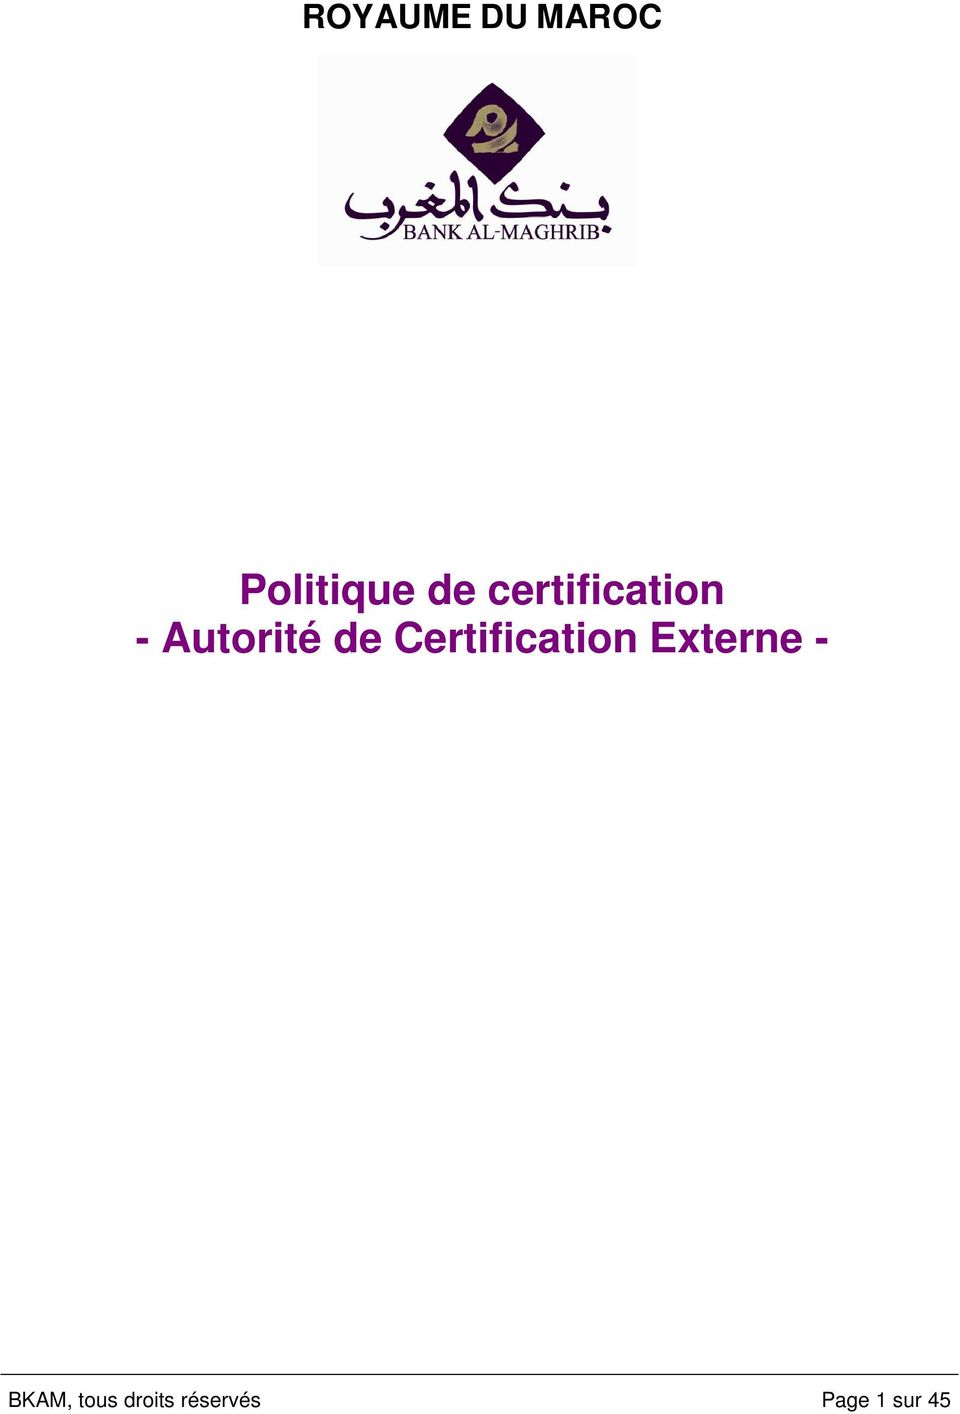 Certification Externe - BKAM,